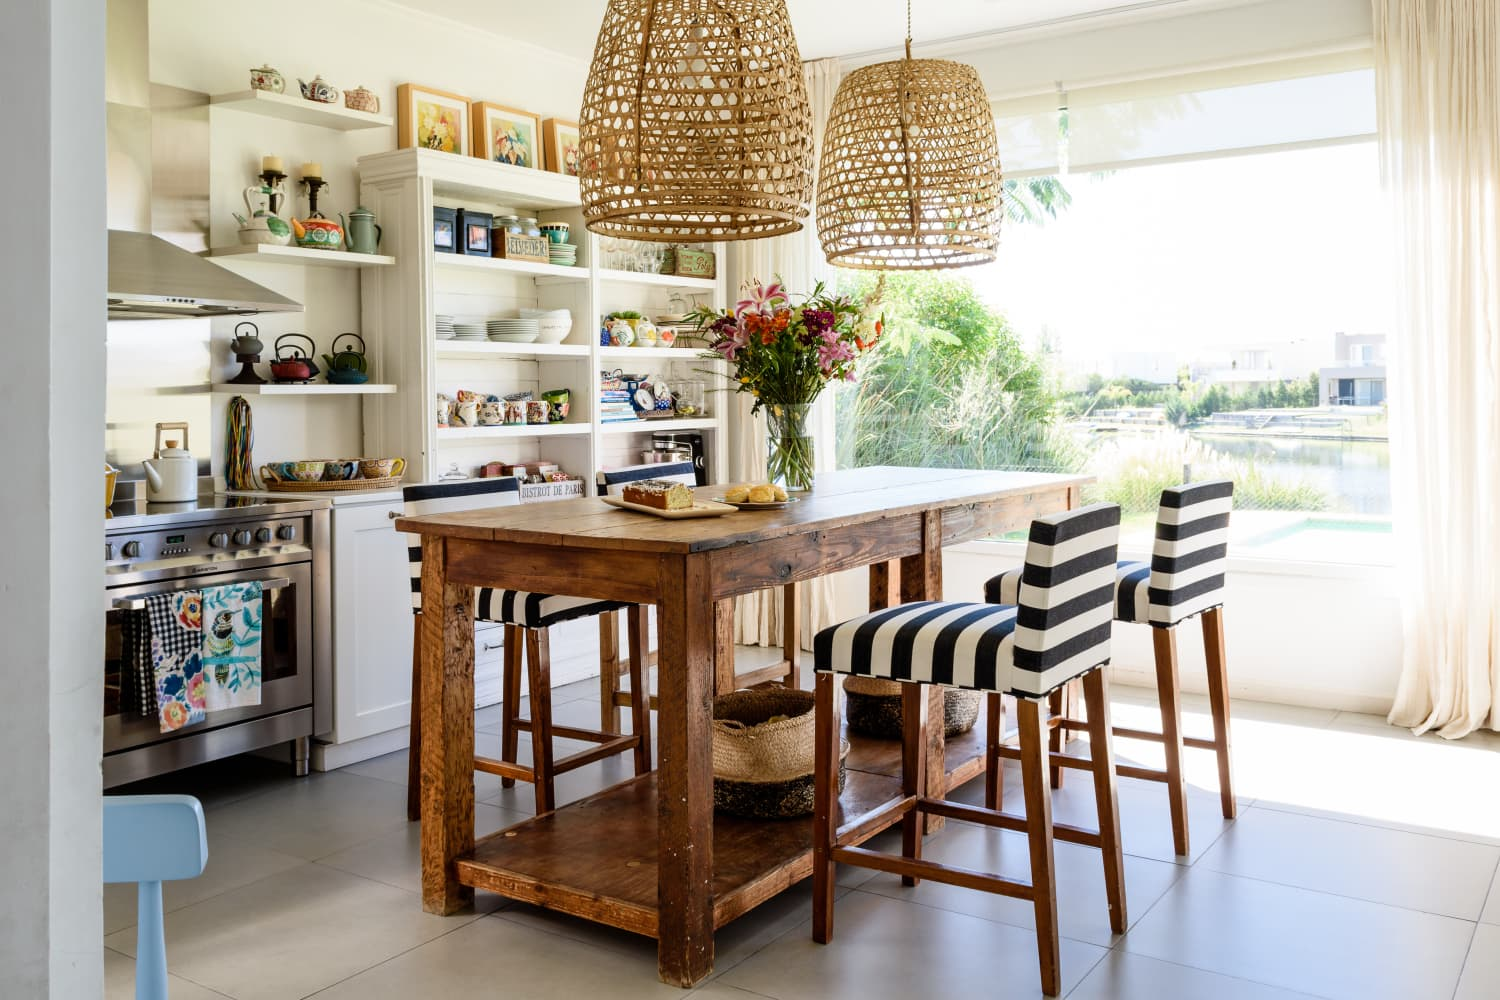 101 Little Ways to Love Your Kitchen More